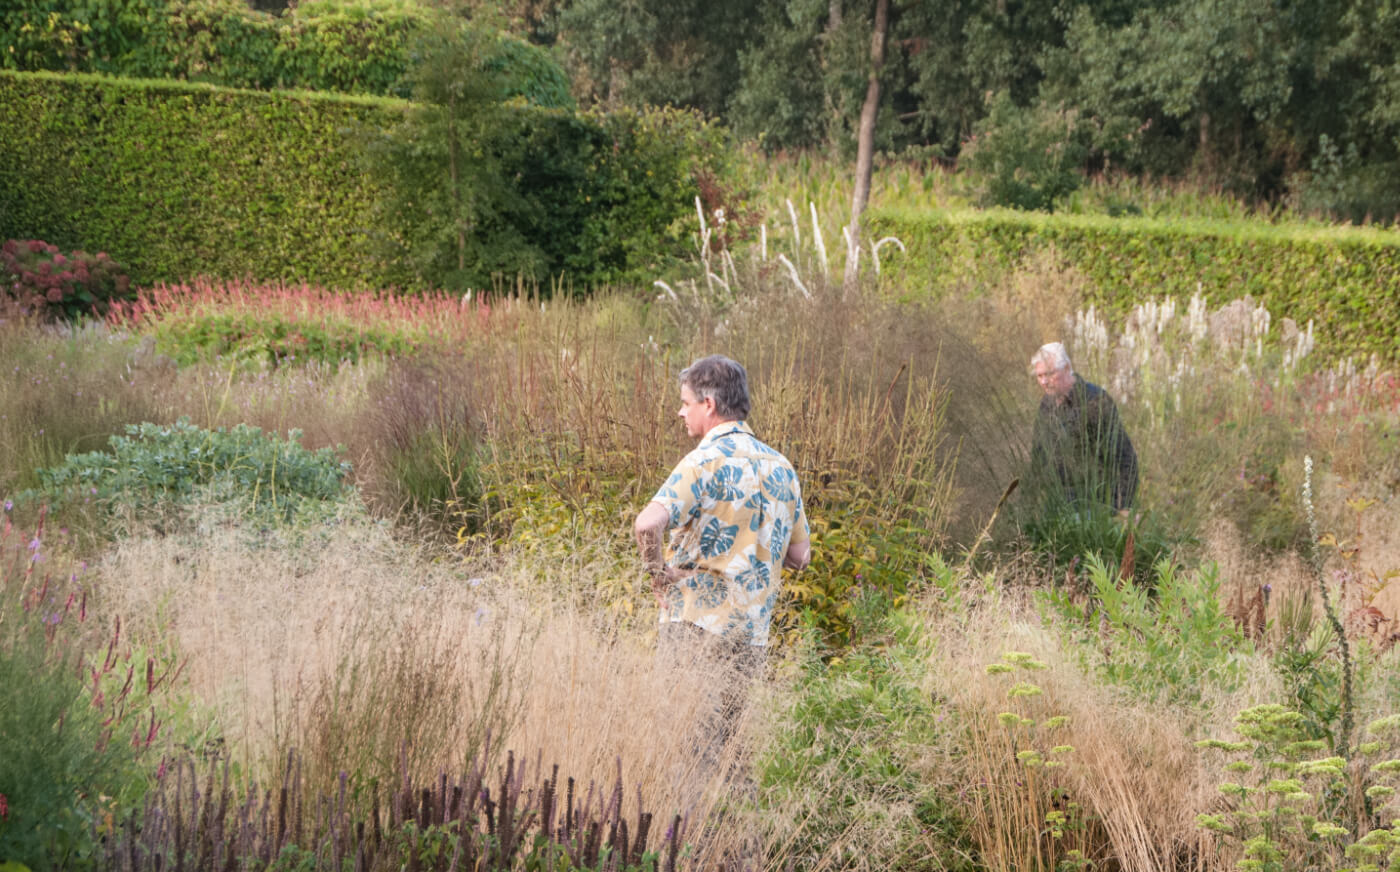 Dr Noel Kingsbury and Piet Oudolf, In Piet's Garden at Hummelo